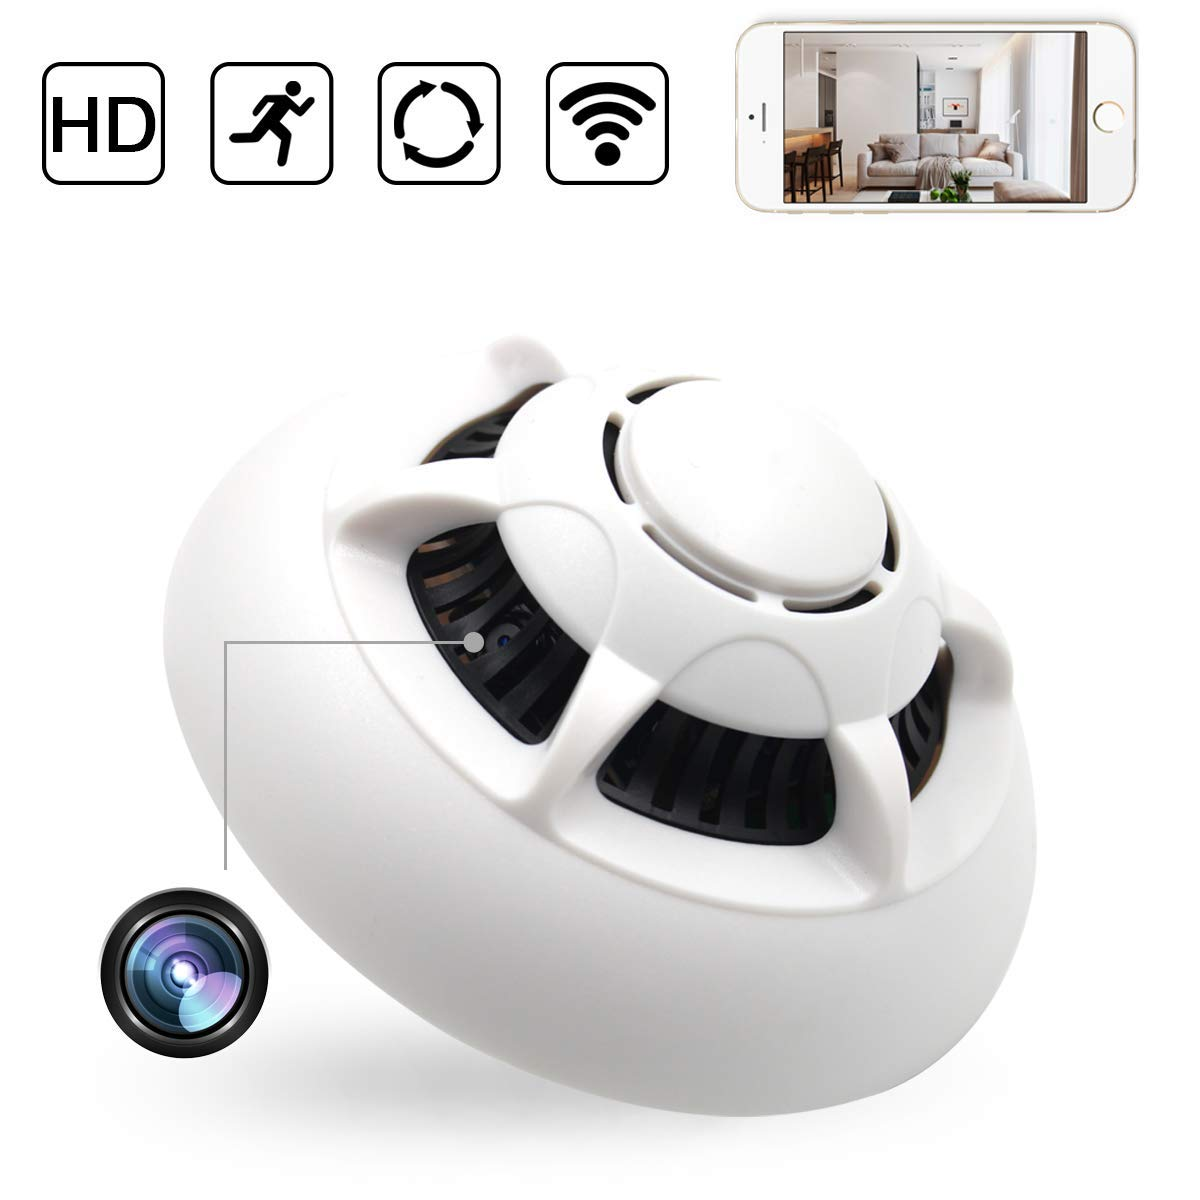 WiFi IP Smoke Detector Camera Monitor Motion Detection Nanny SpyCam DVR HD 1080P